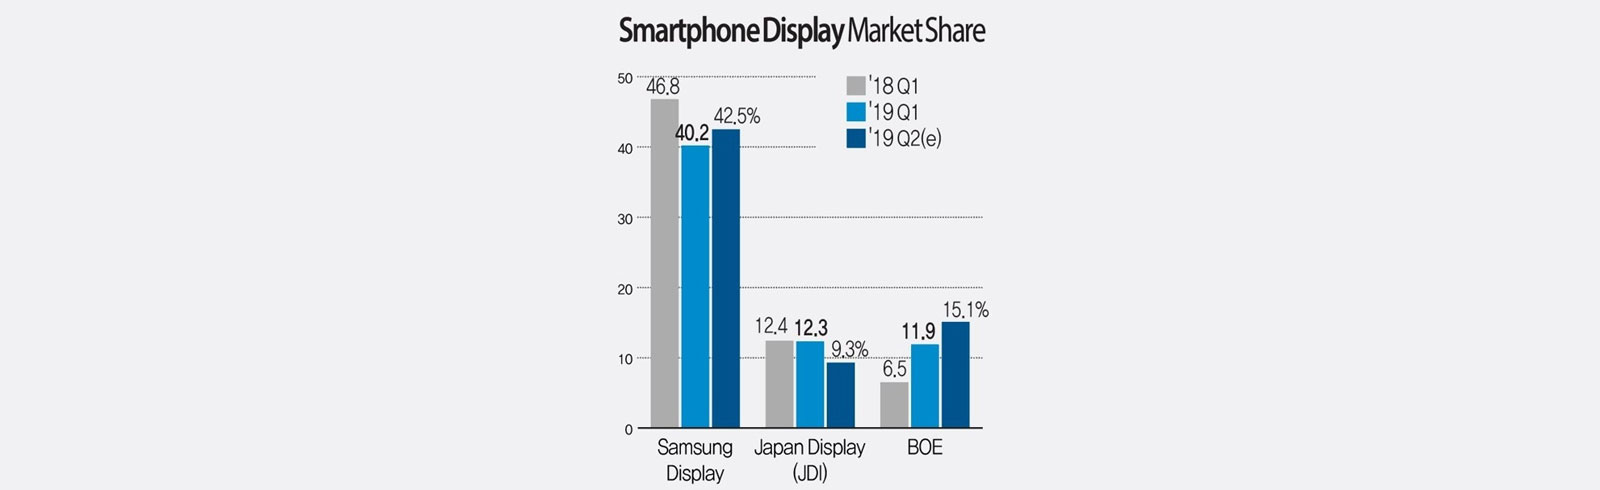 Samsung Display maintains a top position in the smartphone display market